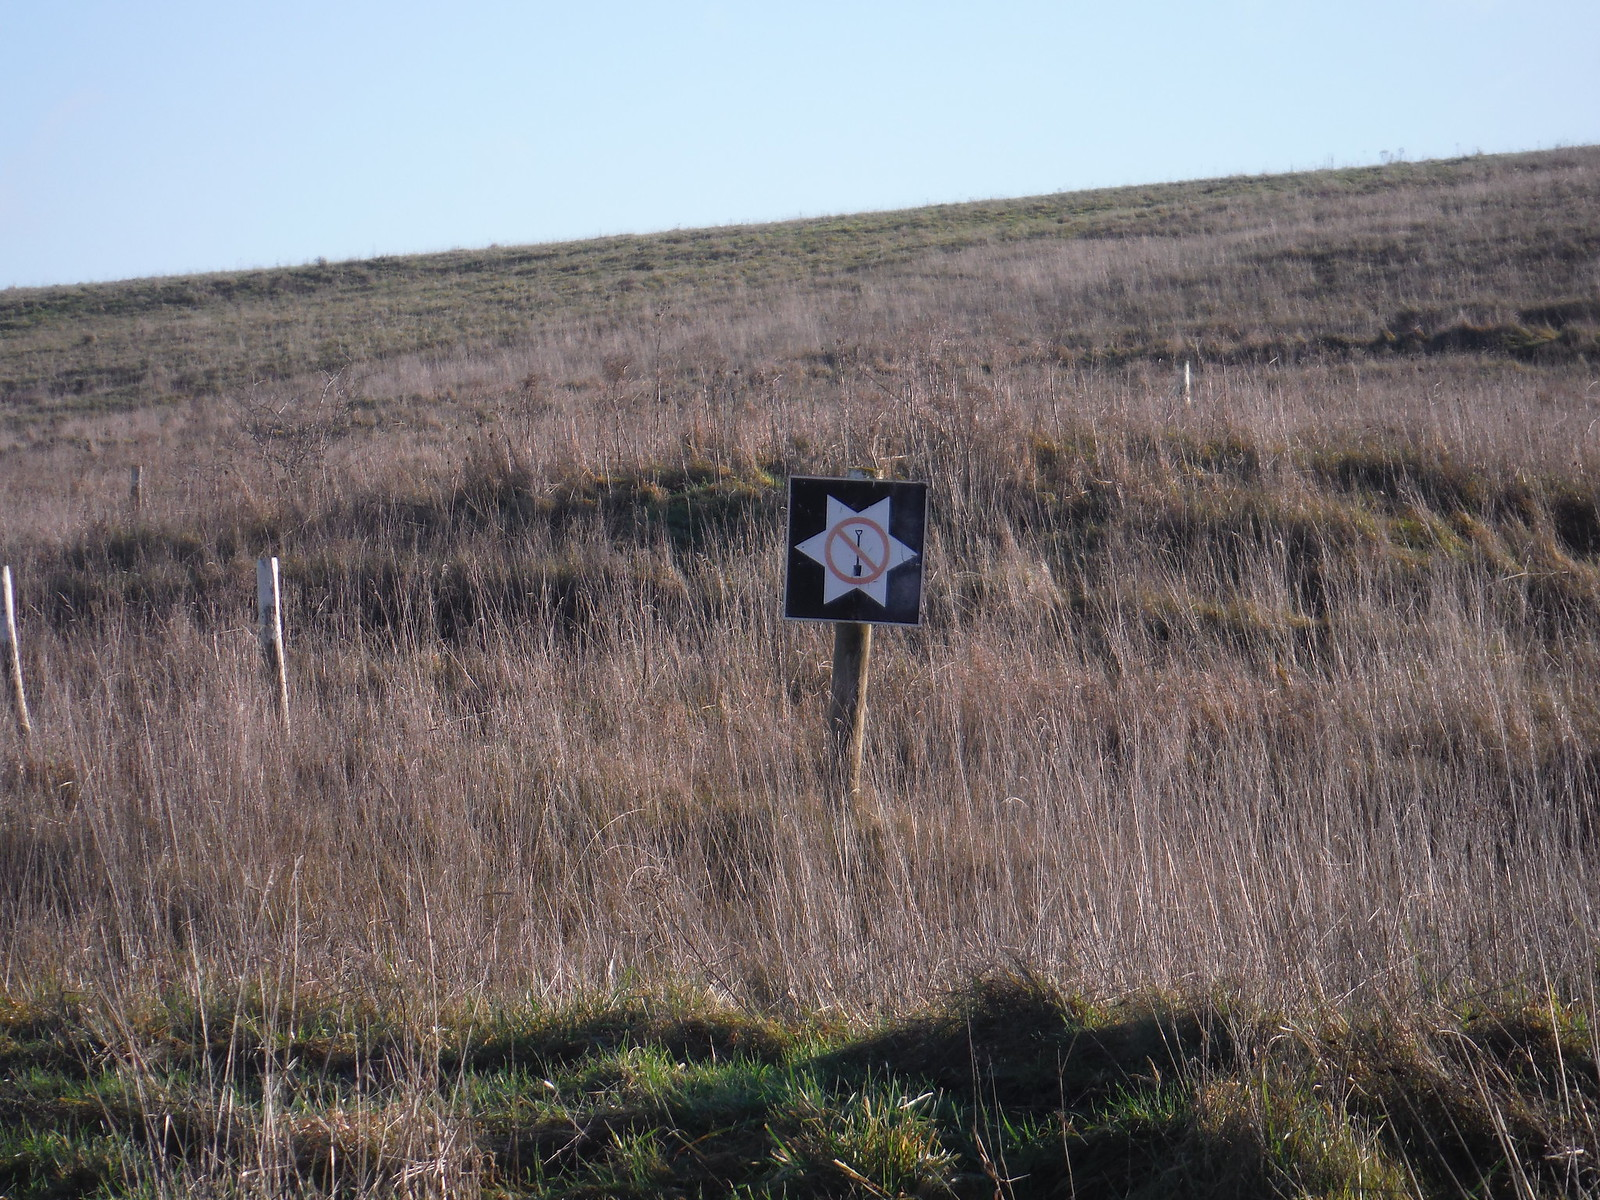 Imber Range, 'No Digging'-sign SWC Walk 286 Westbury to Warminster (via Imber Range)